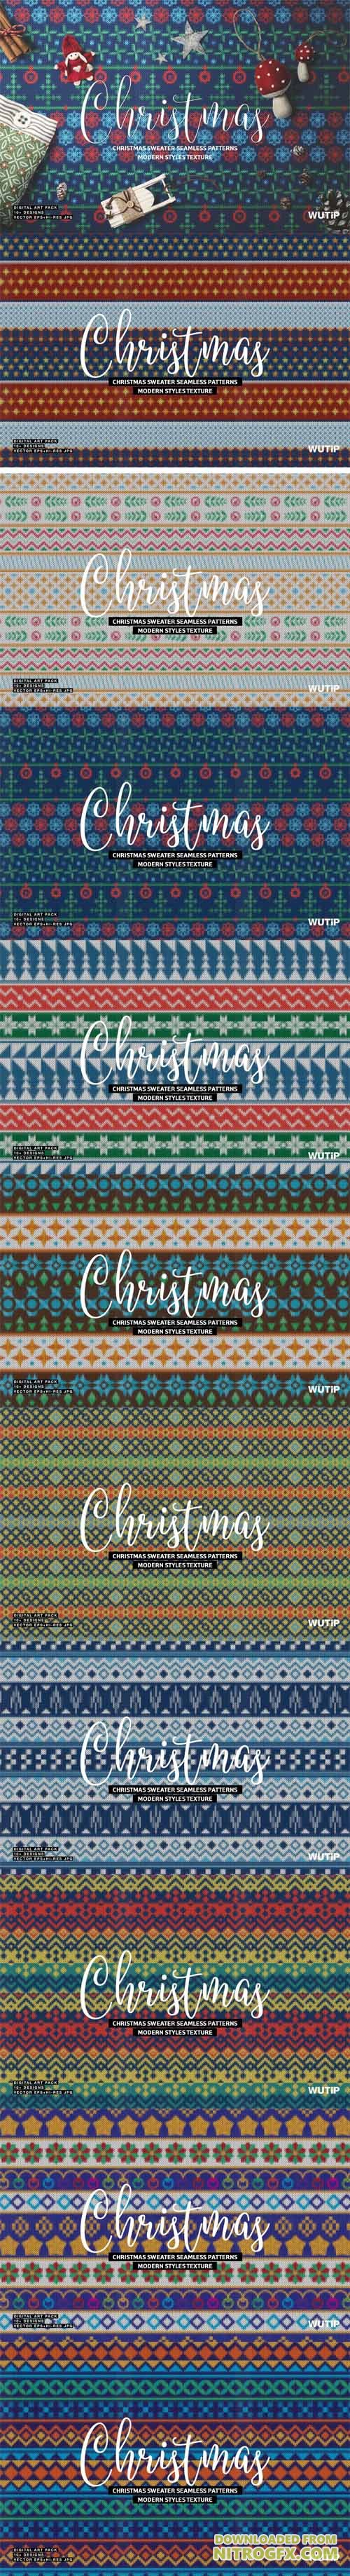 Christmas Sweater Seamless Patterns